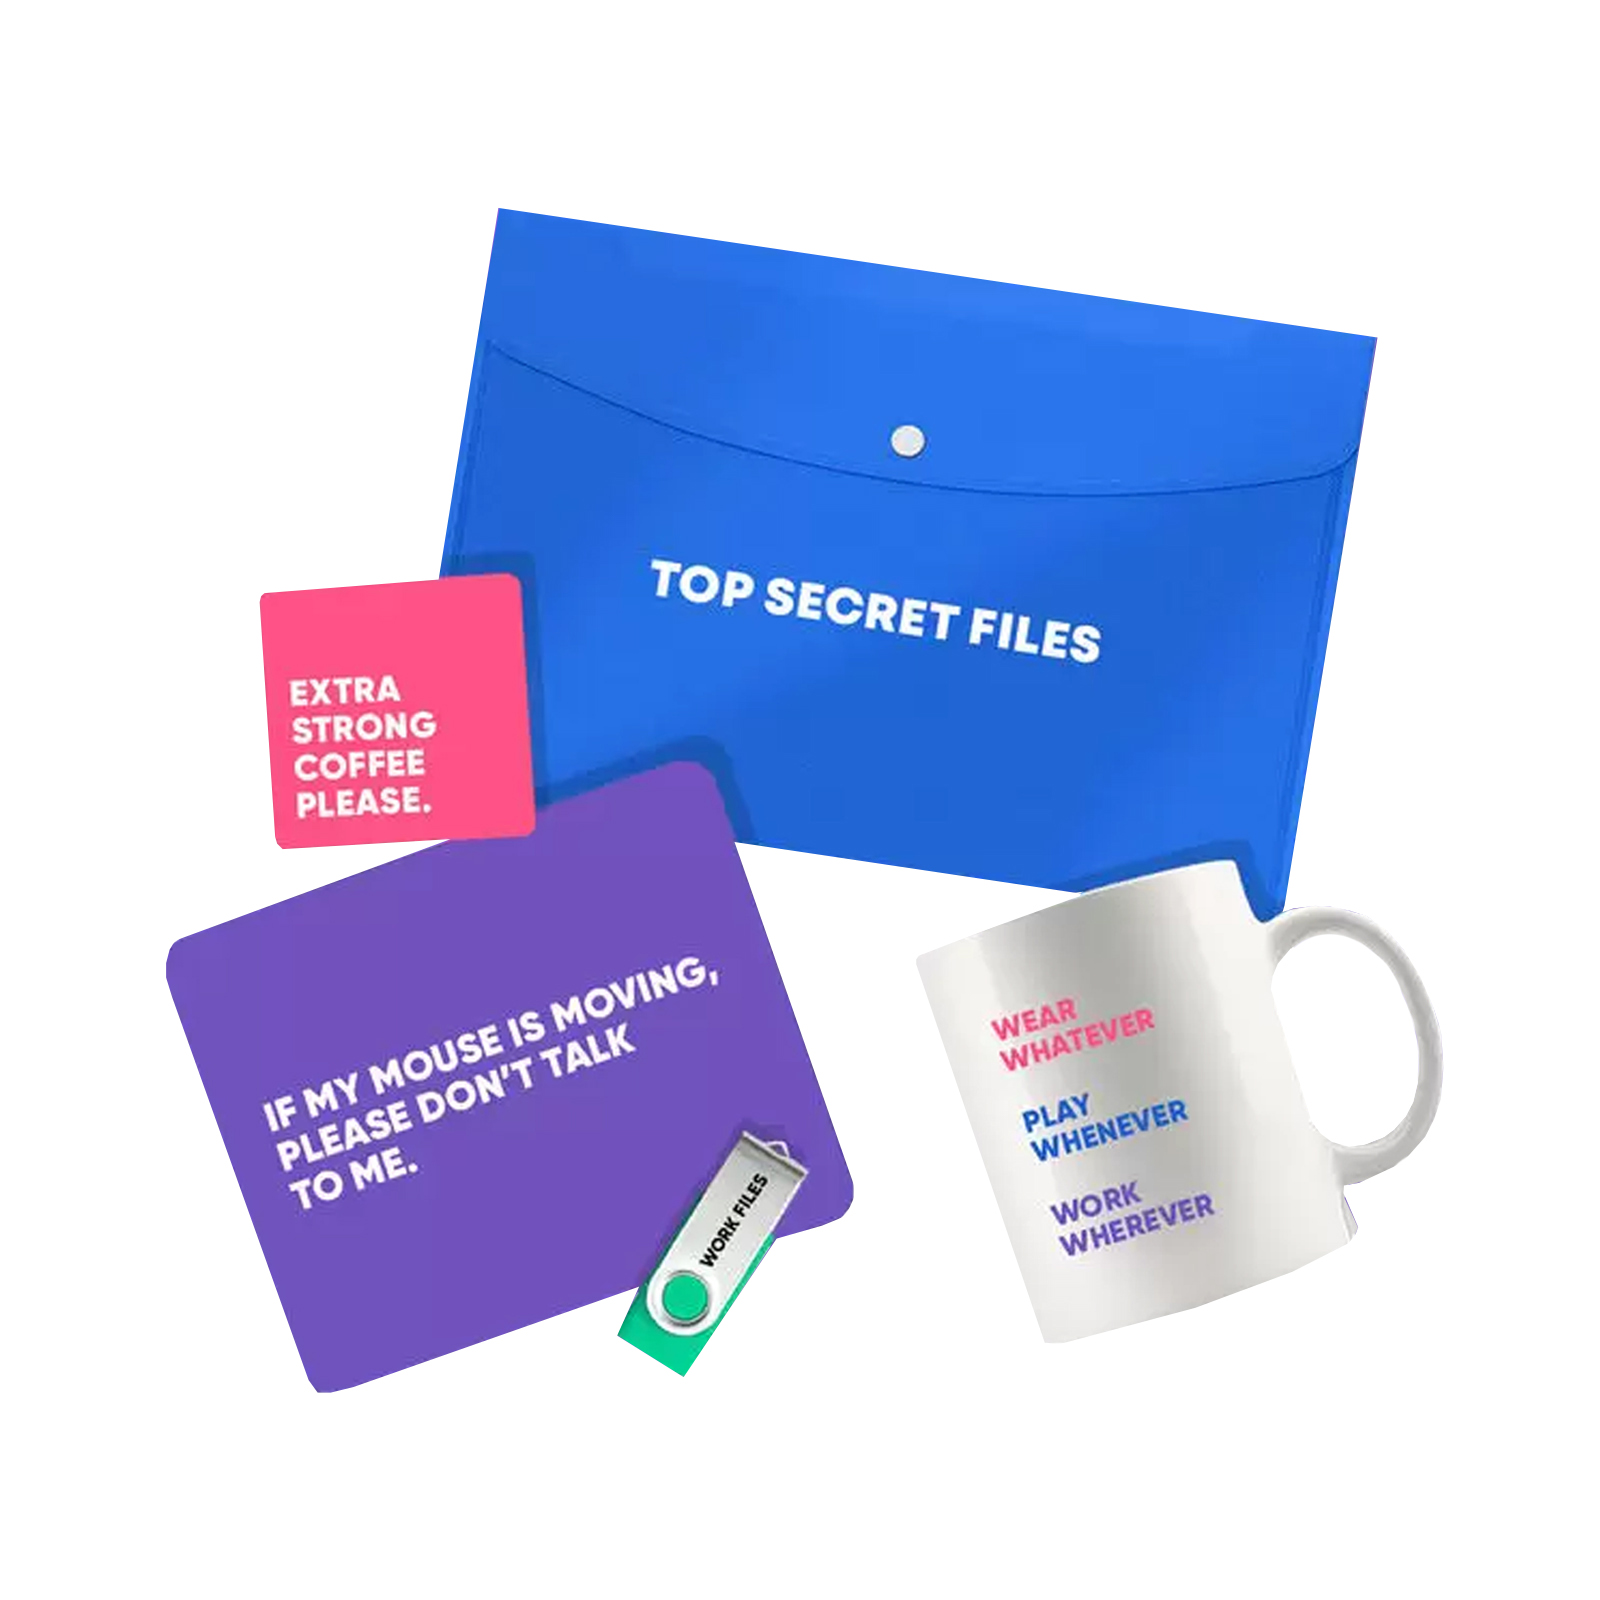 working from home kits for your staff and colleagues